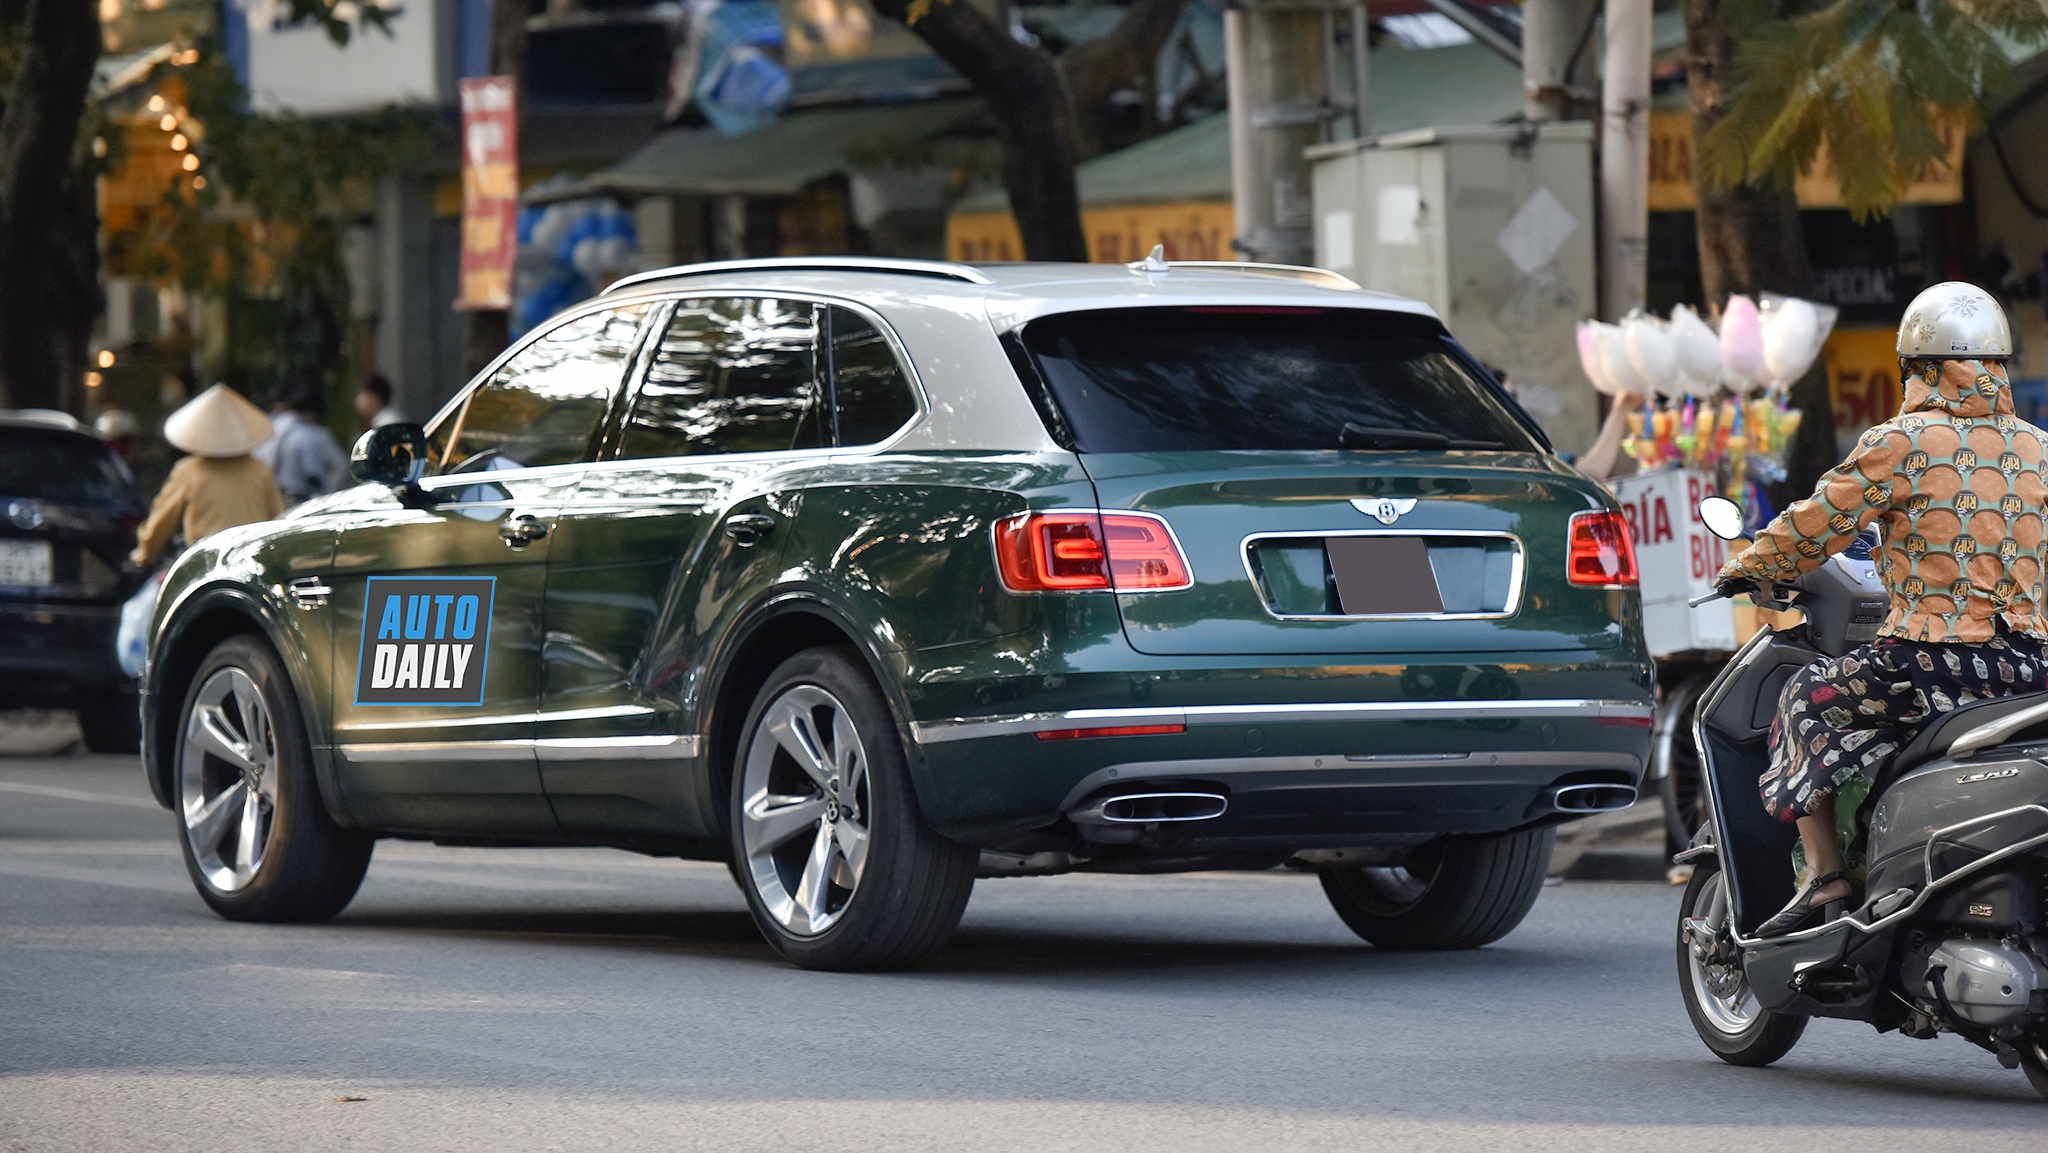 bentley-bentayga-autodaily-dsc8274-copy.jpg